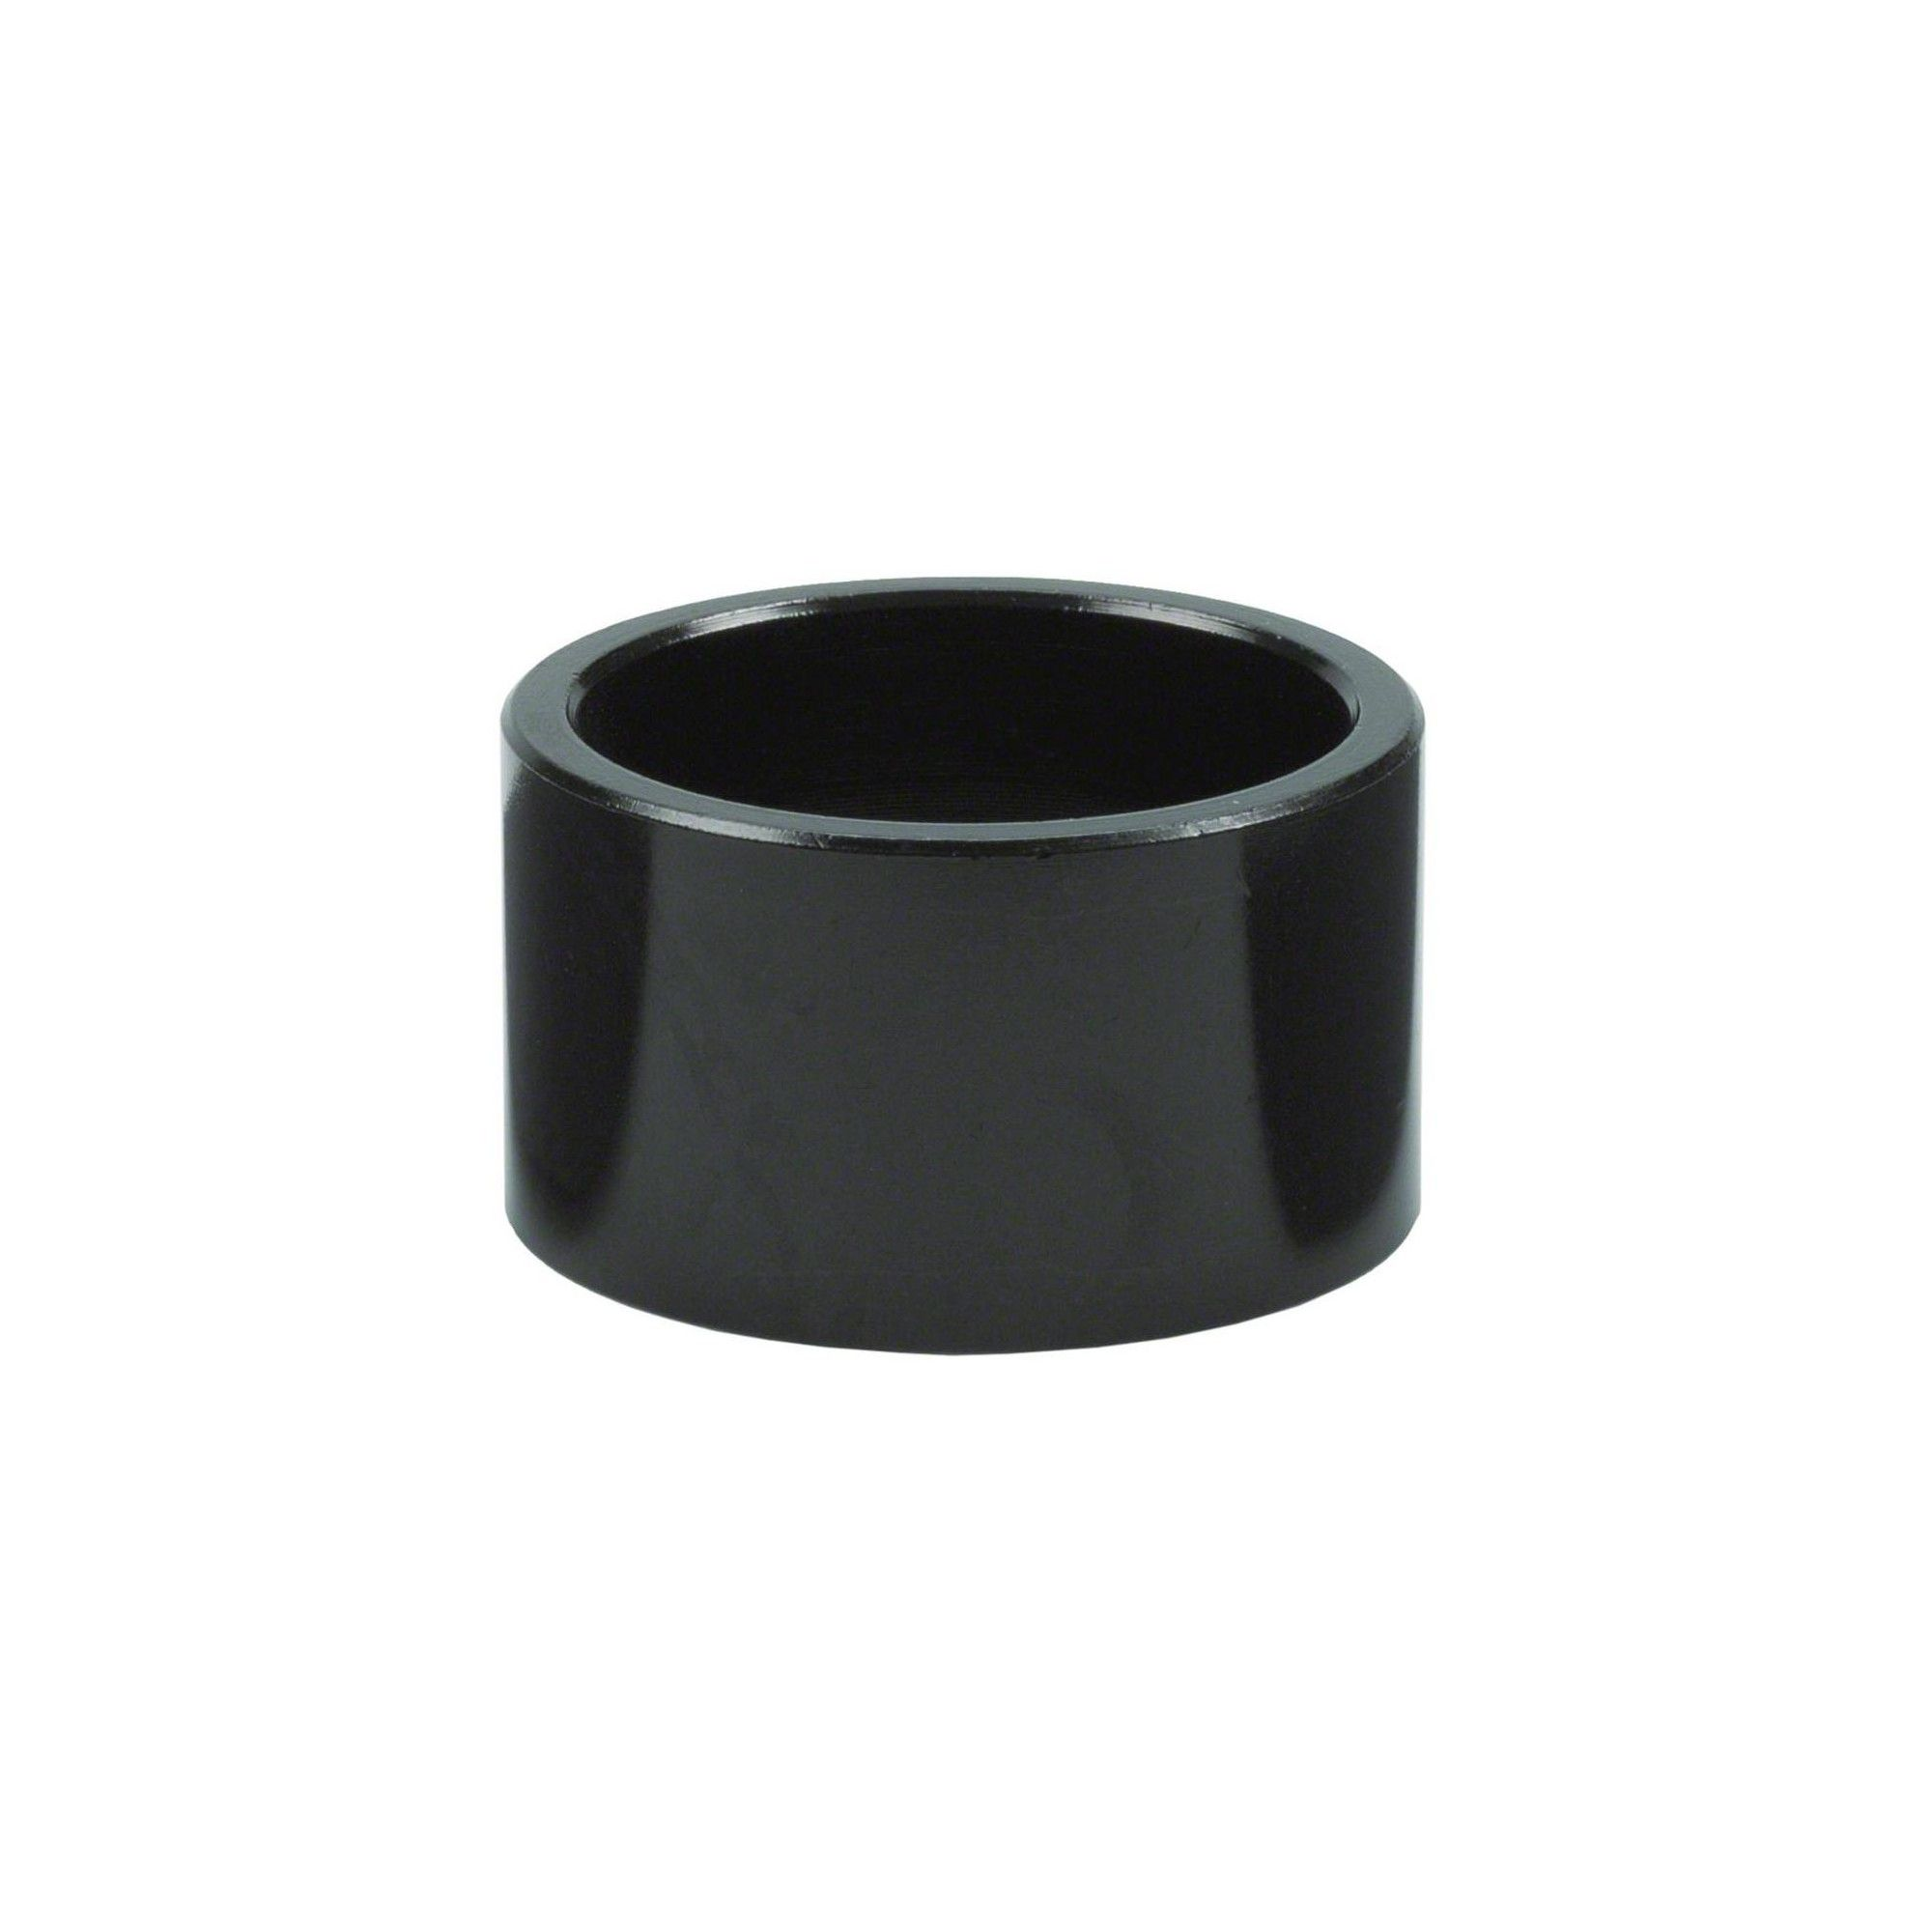 New Wheels Manufacturing 20mm 1-1//8  Headset Spacer Black Each